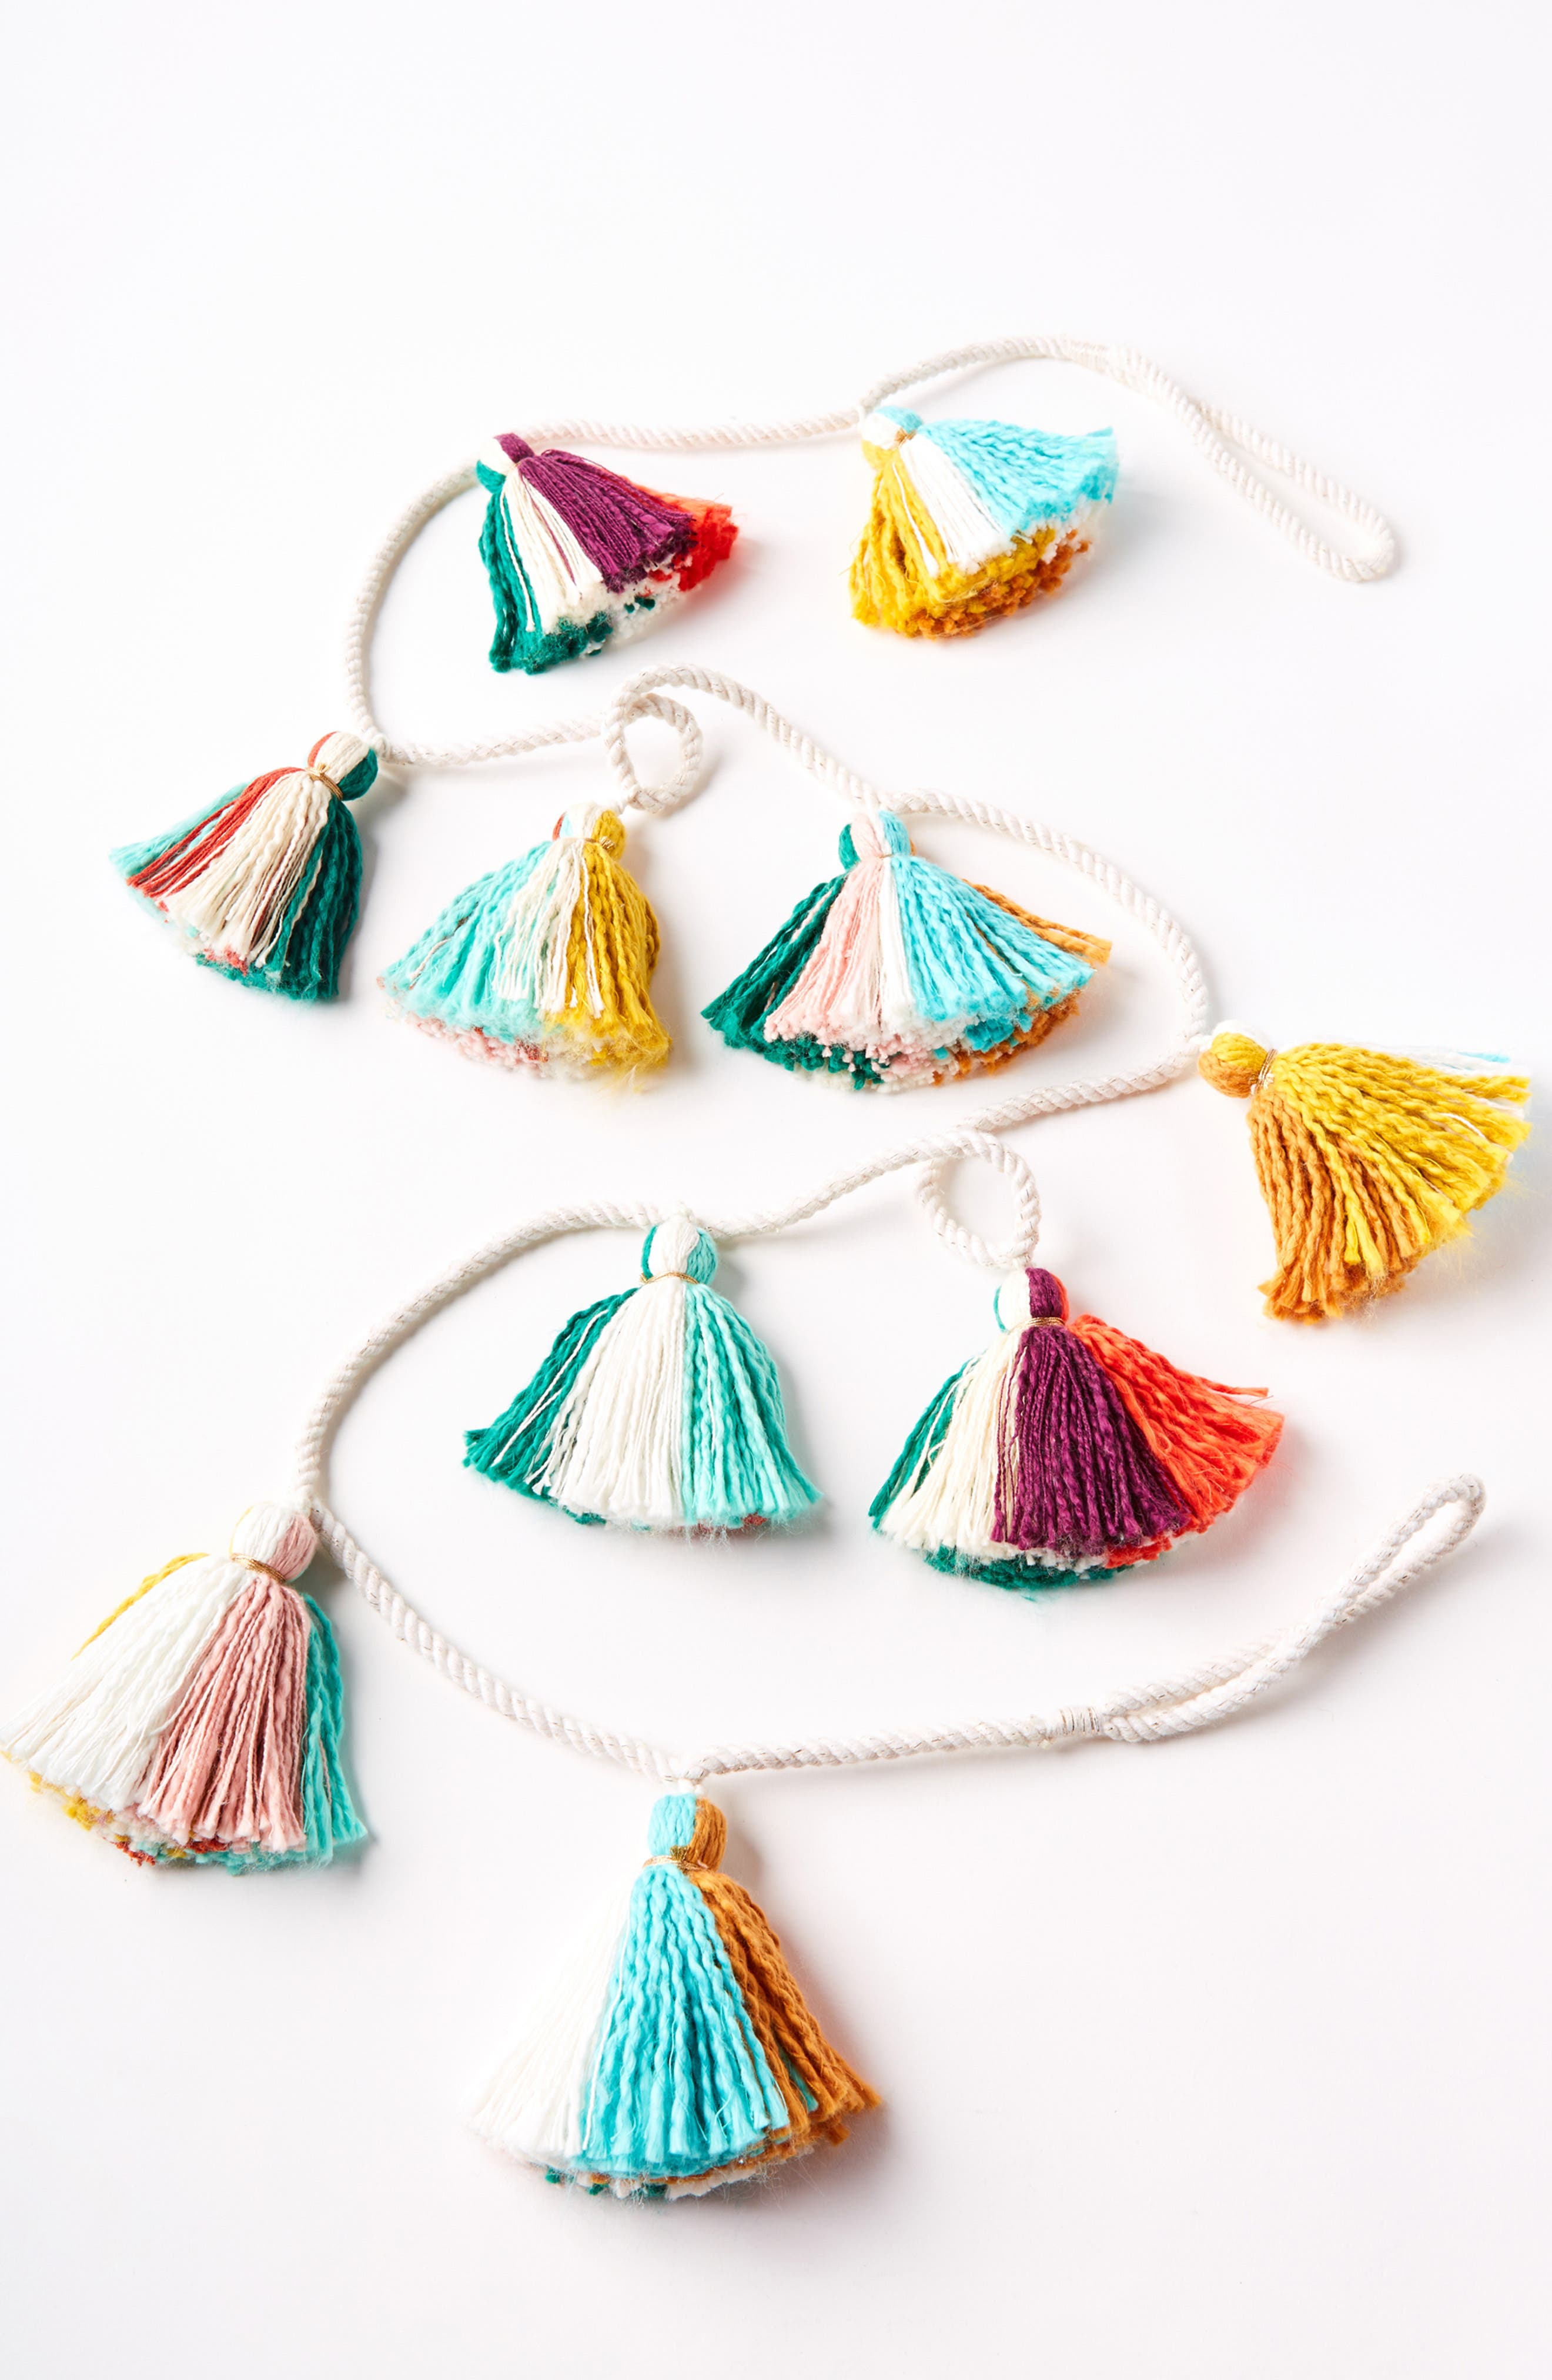 Breanna Garland with Tassels,                             Main thumbnail 1, color,                             802